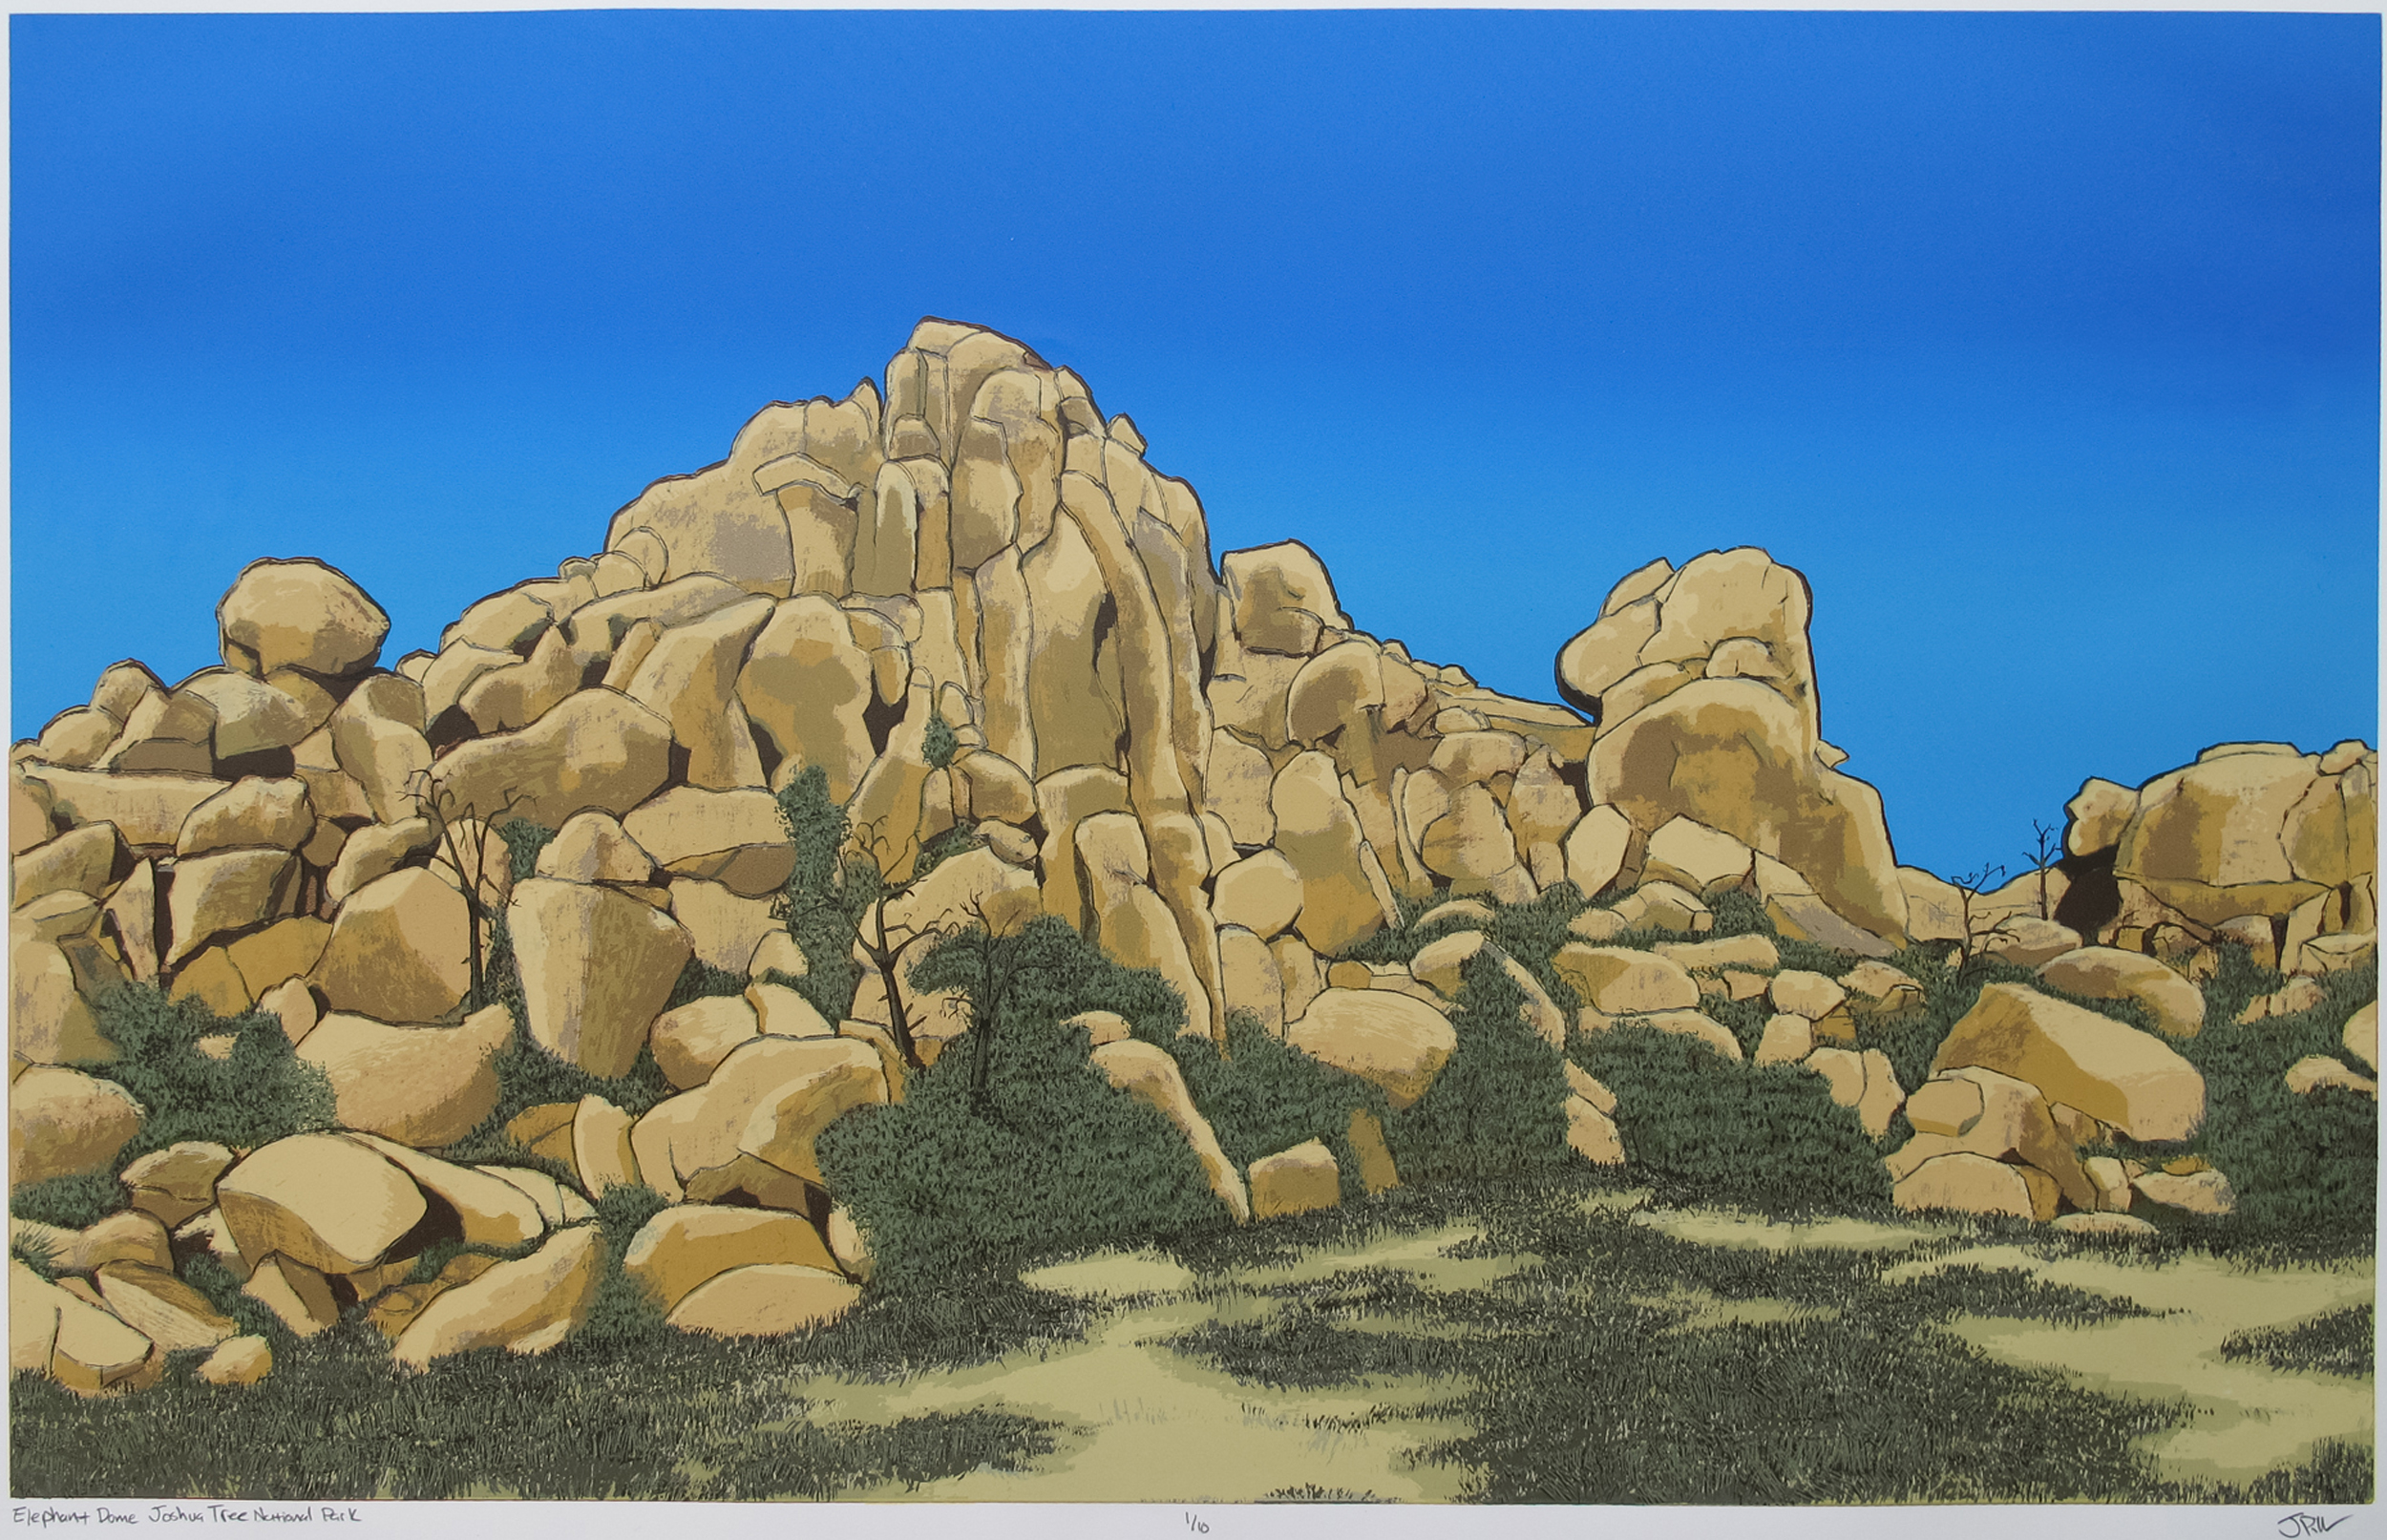 Jeremy Piller, Elephant Dome Joshua Tree National Park, screenprint